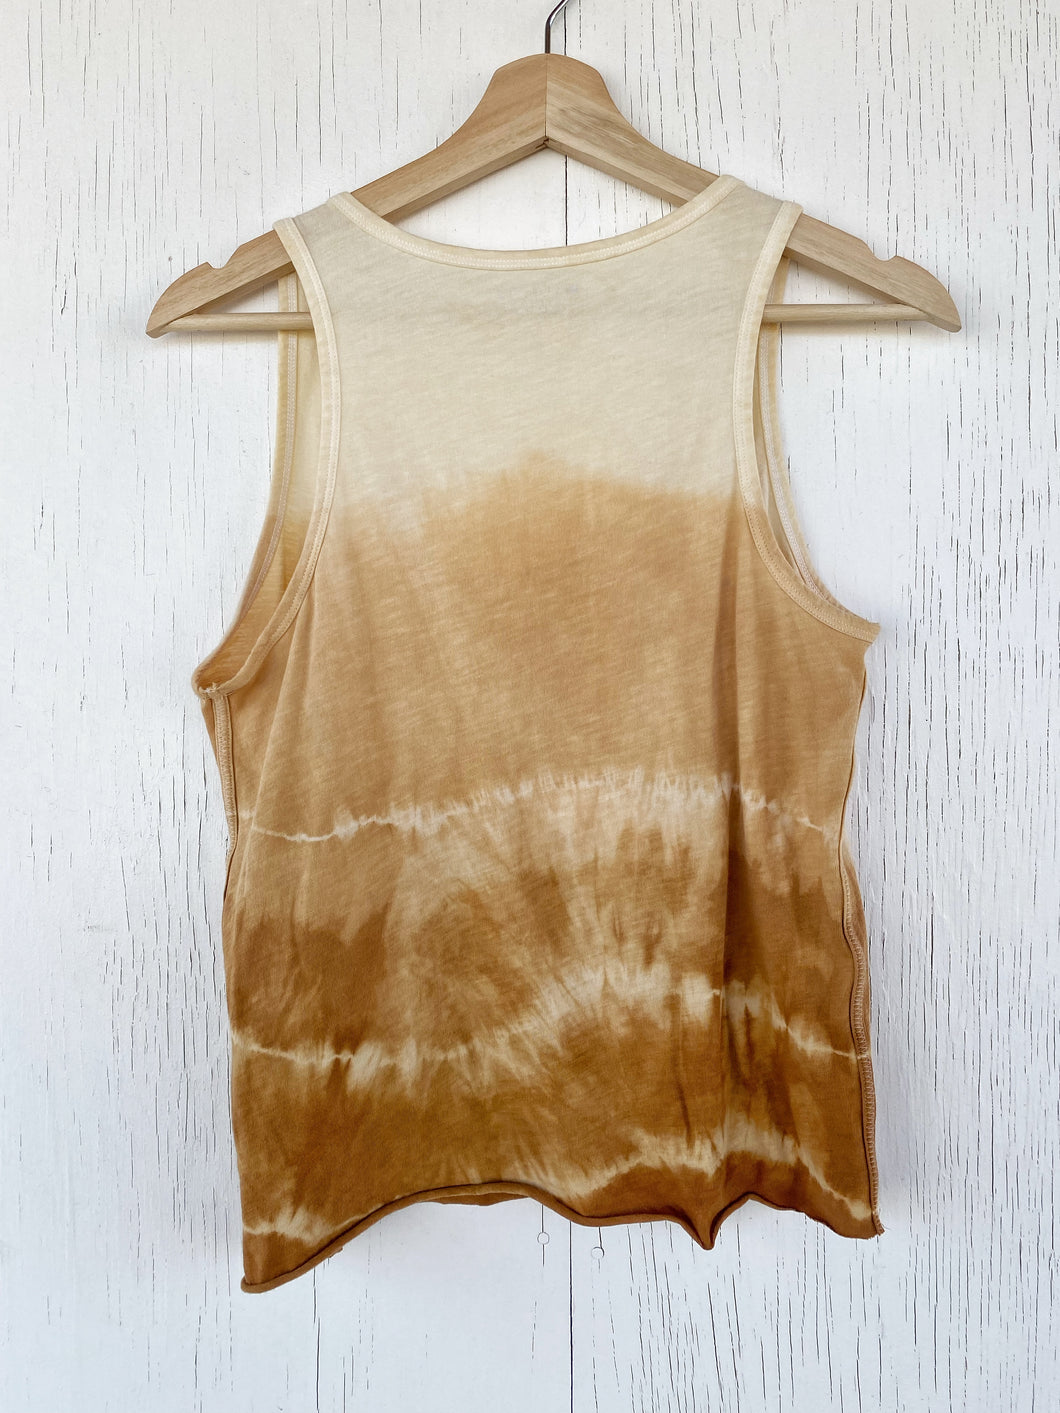 DIY Scrunchie Dye Kit